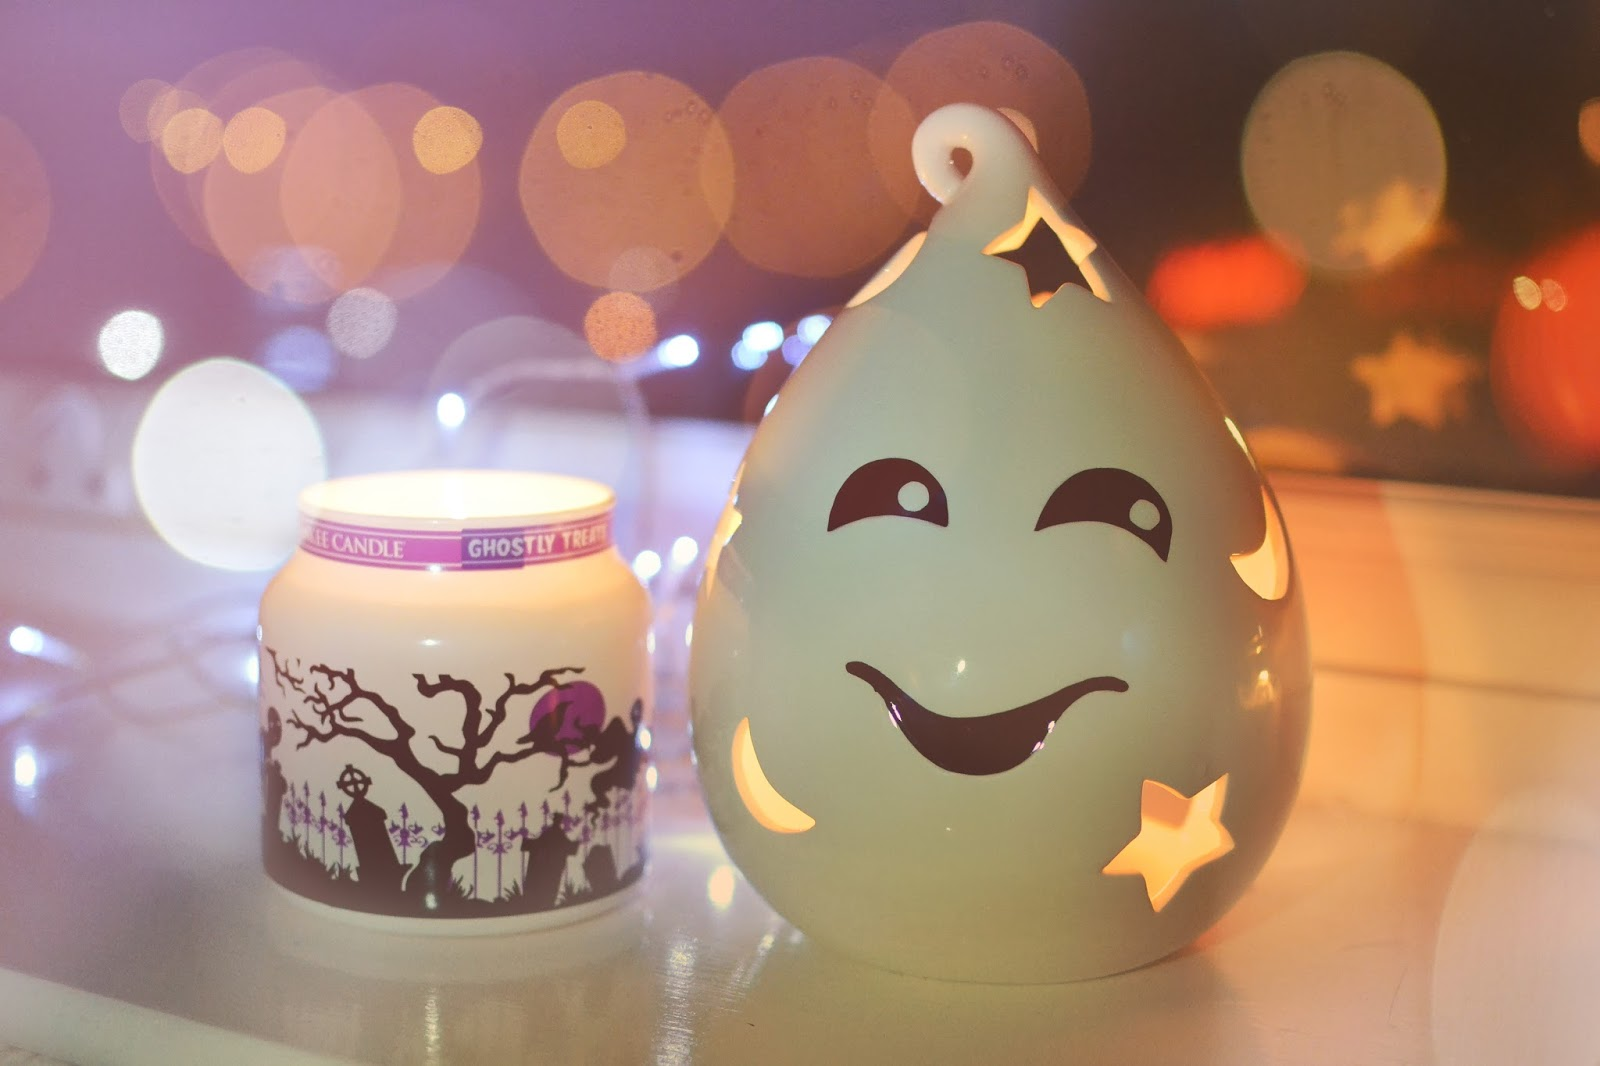 ghostly treats, ghost tea light holder, yankee candle